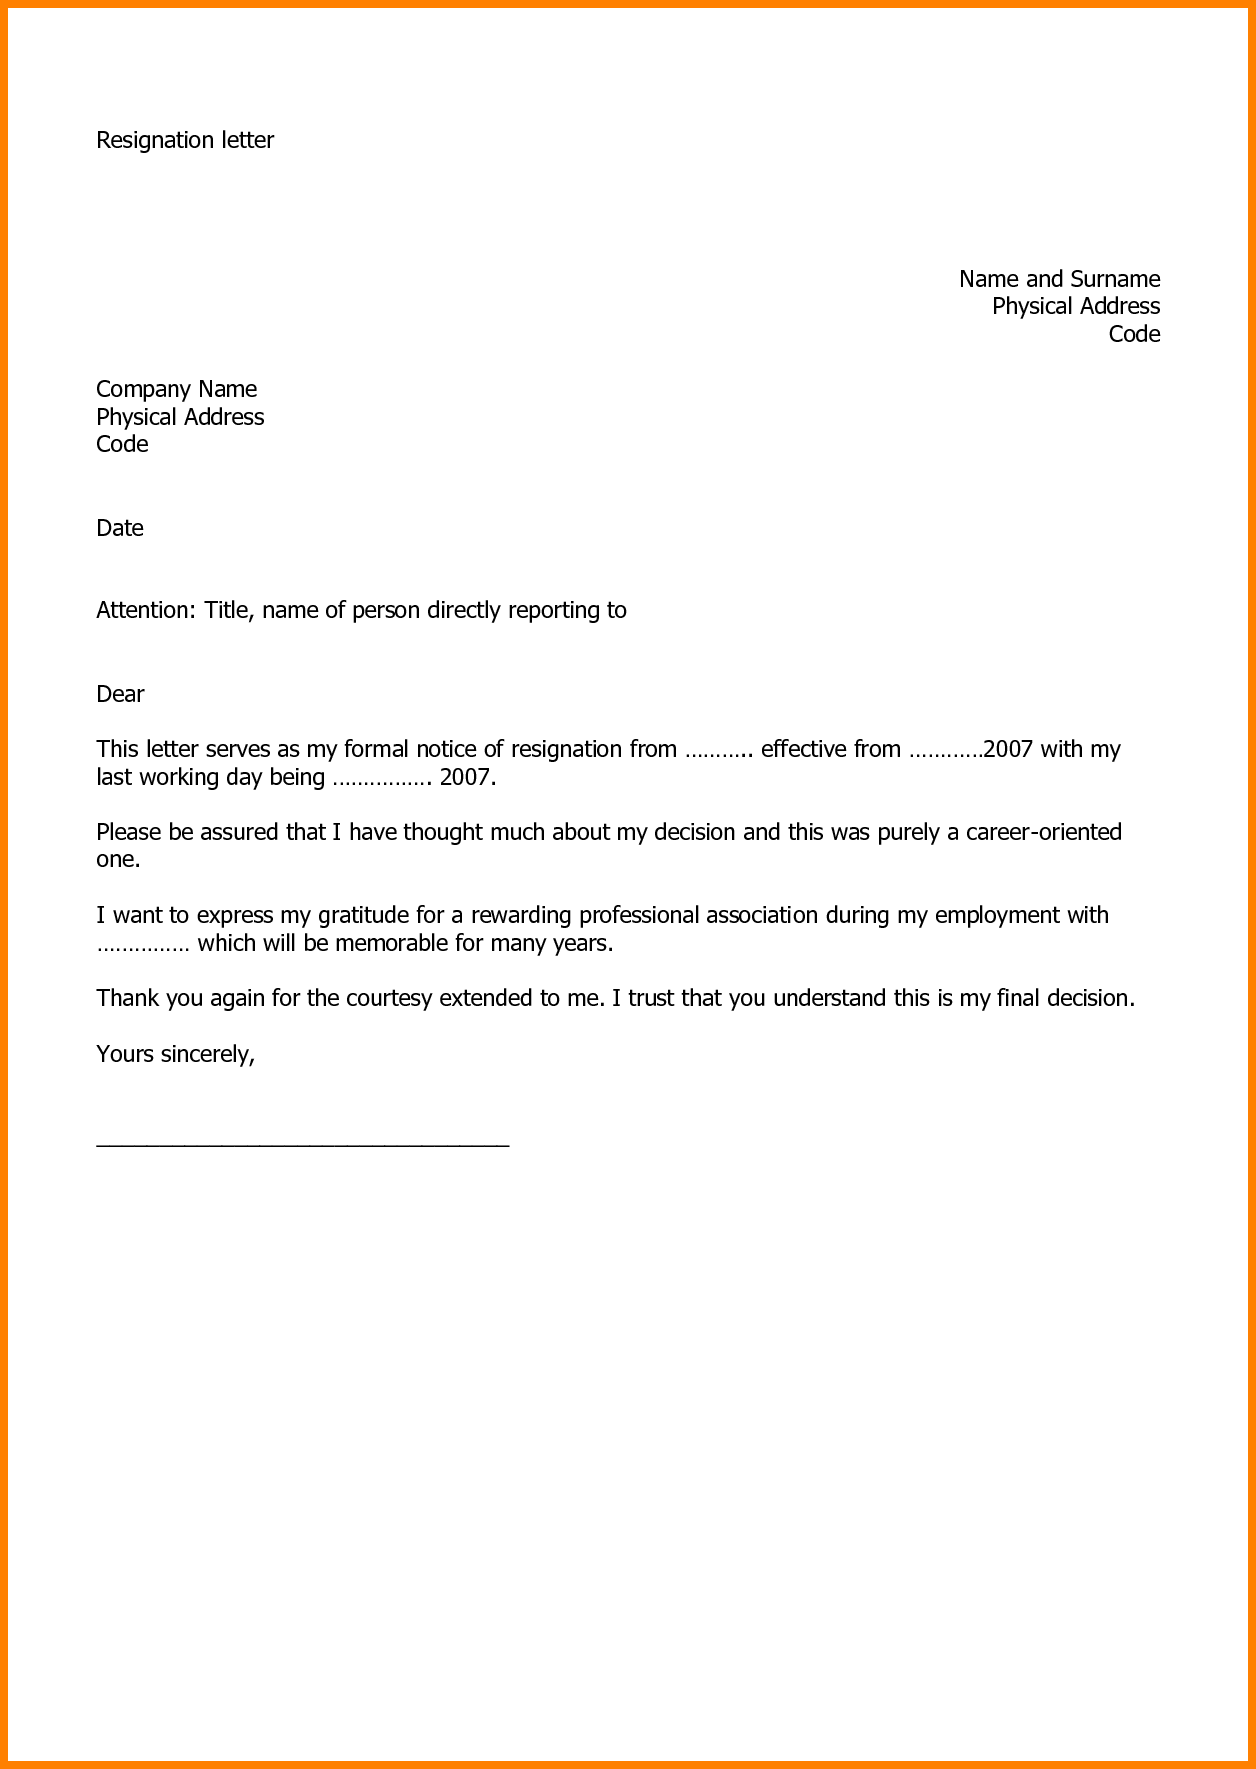 Beautiful Letter Format For Job Resignation Resignation Letter Example. Intended For Resignation Letter Format